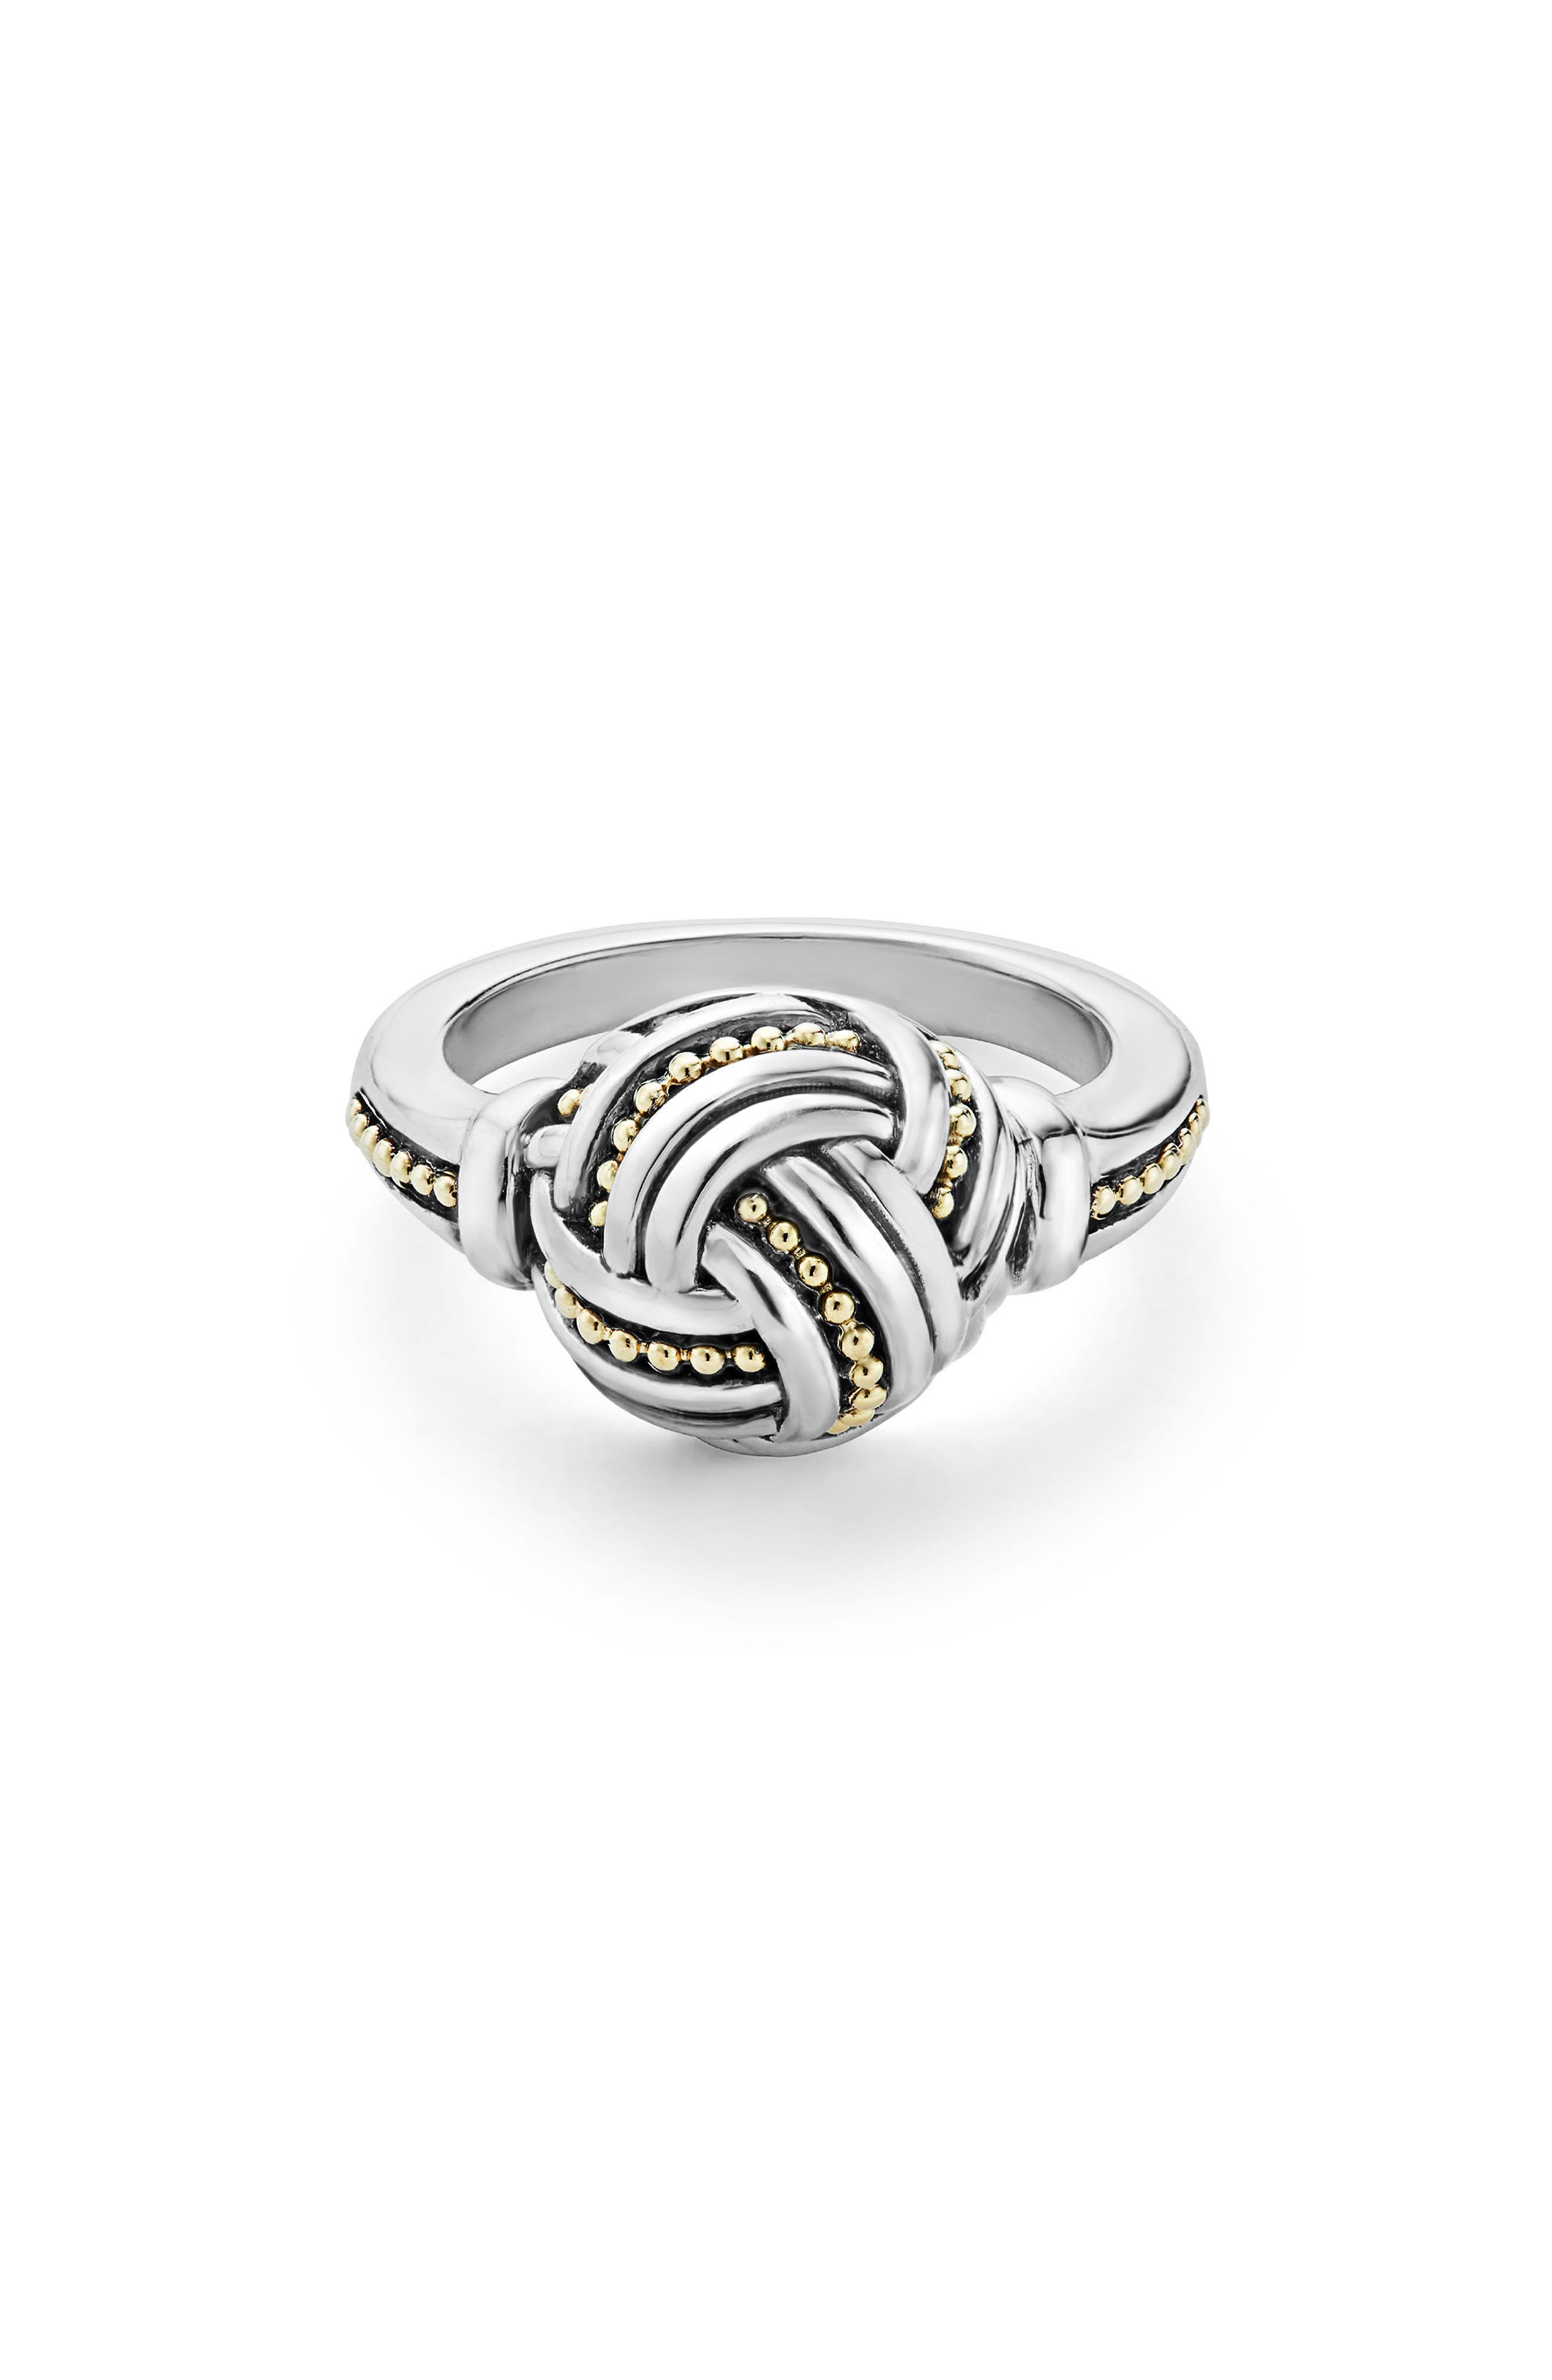 Small Round Ring,                             Main thumbnail 1, color,                             Silver/ Gold